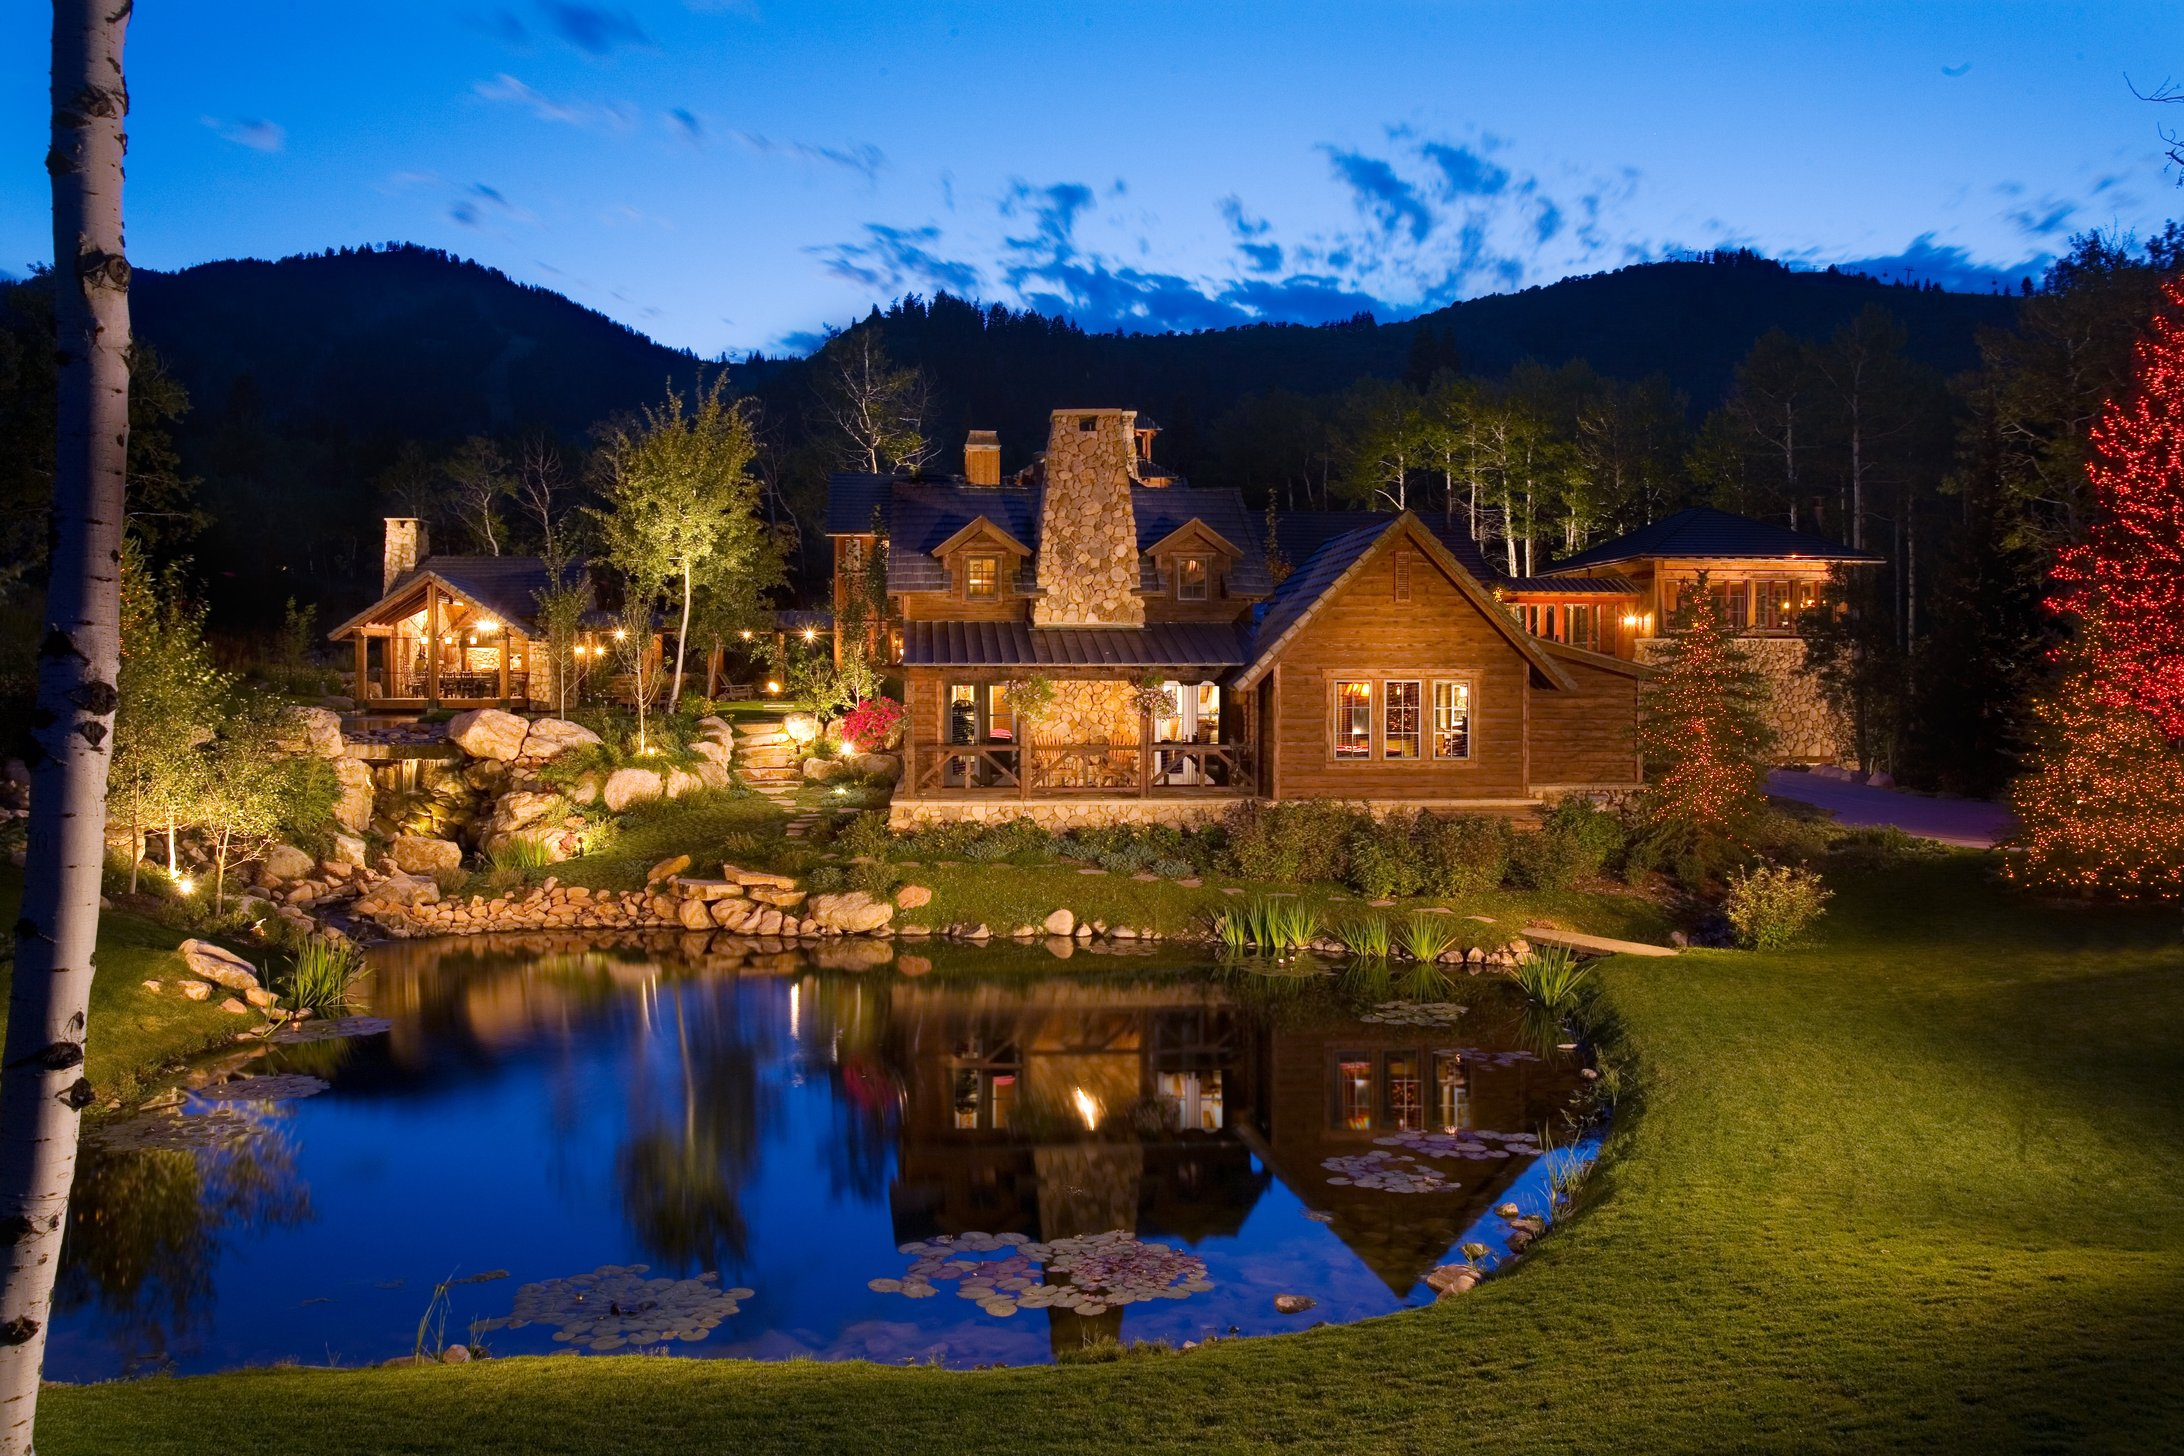 Resort Lifestyle - Park City Utah